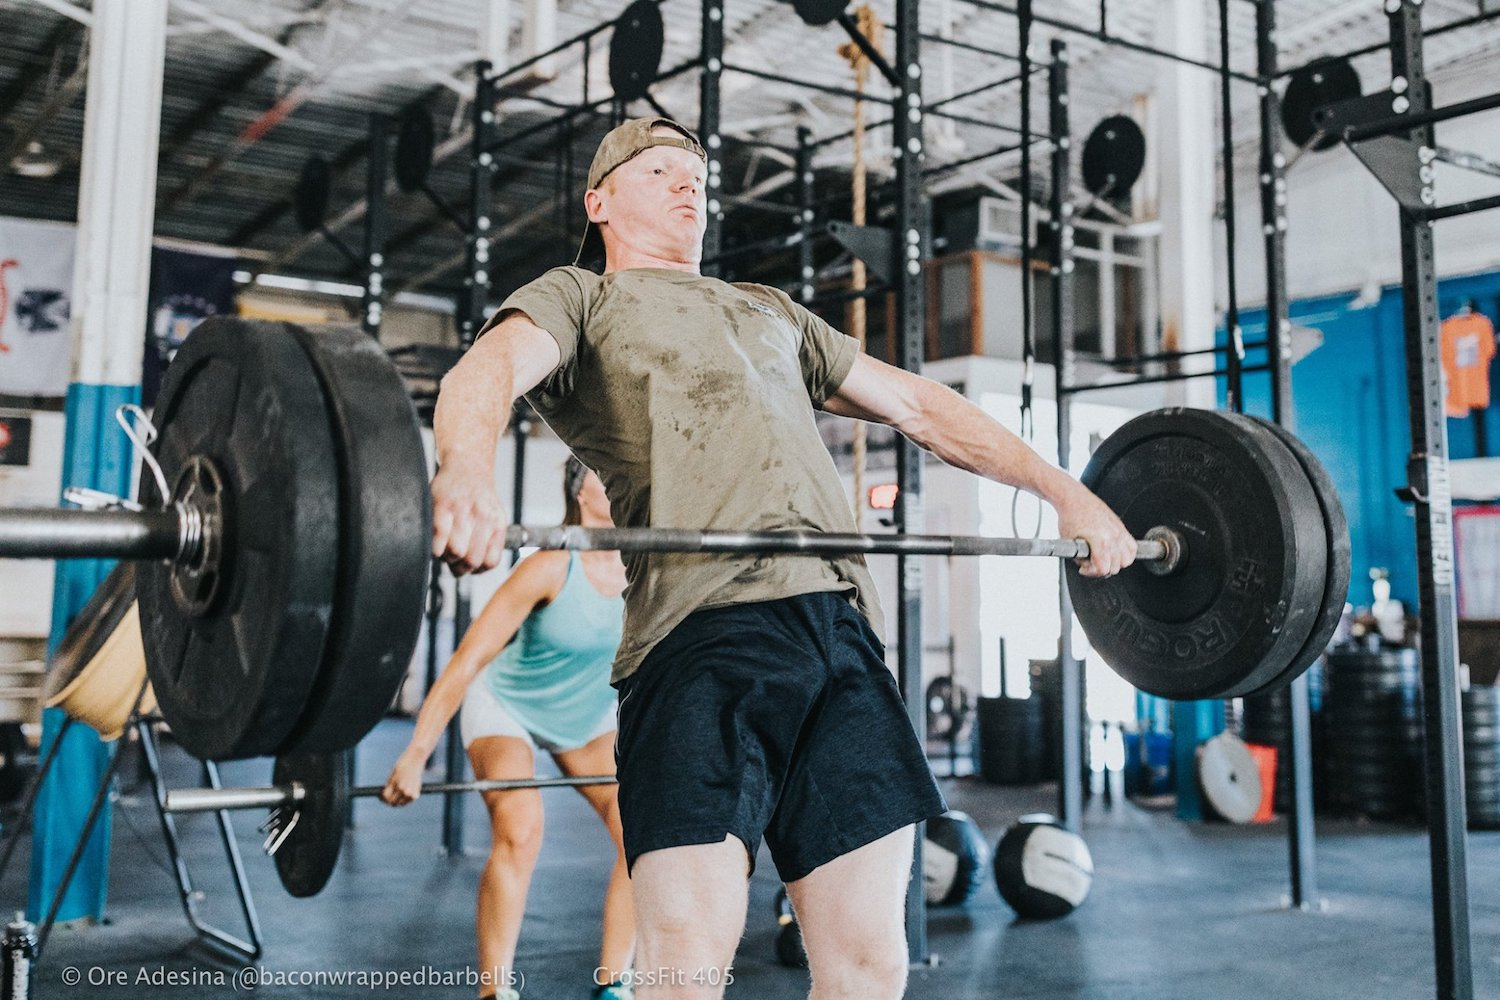 A young man performing an olympic weightlifting movement.